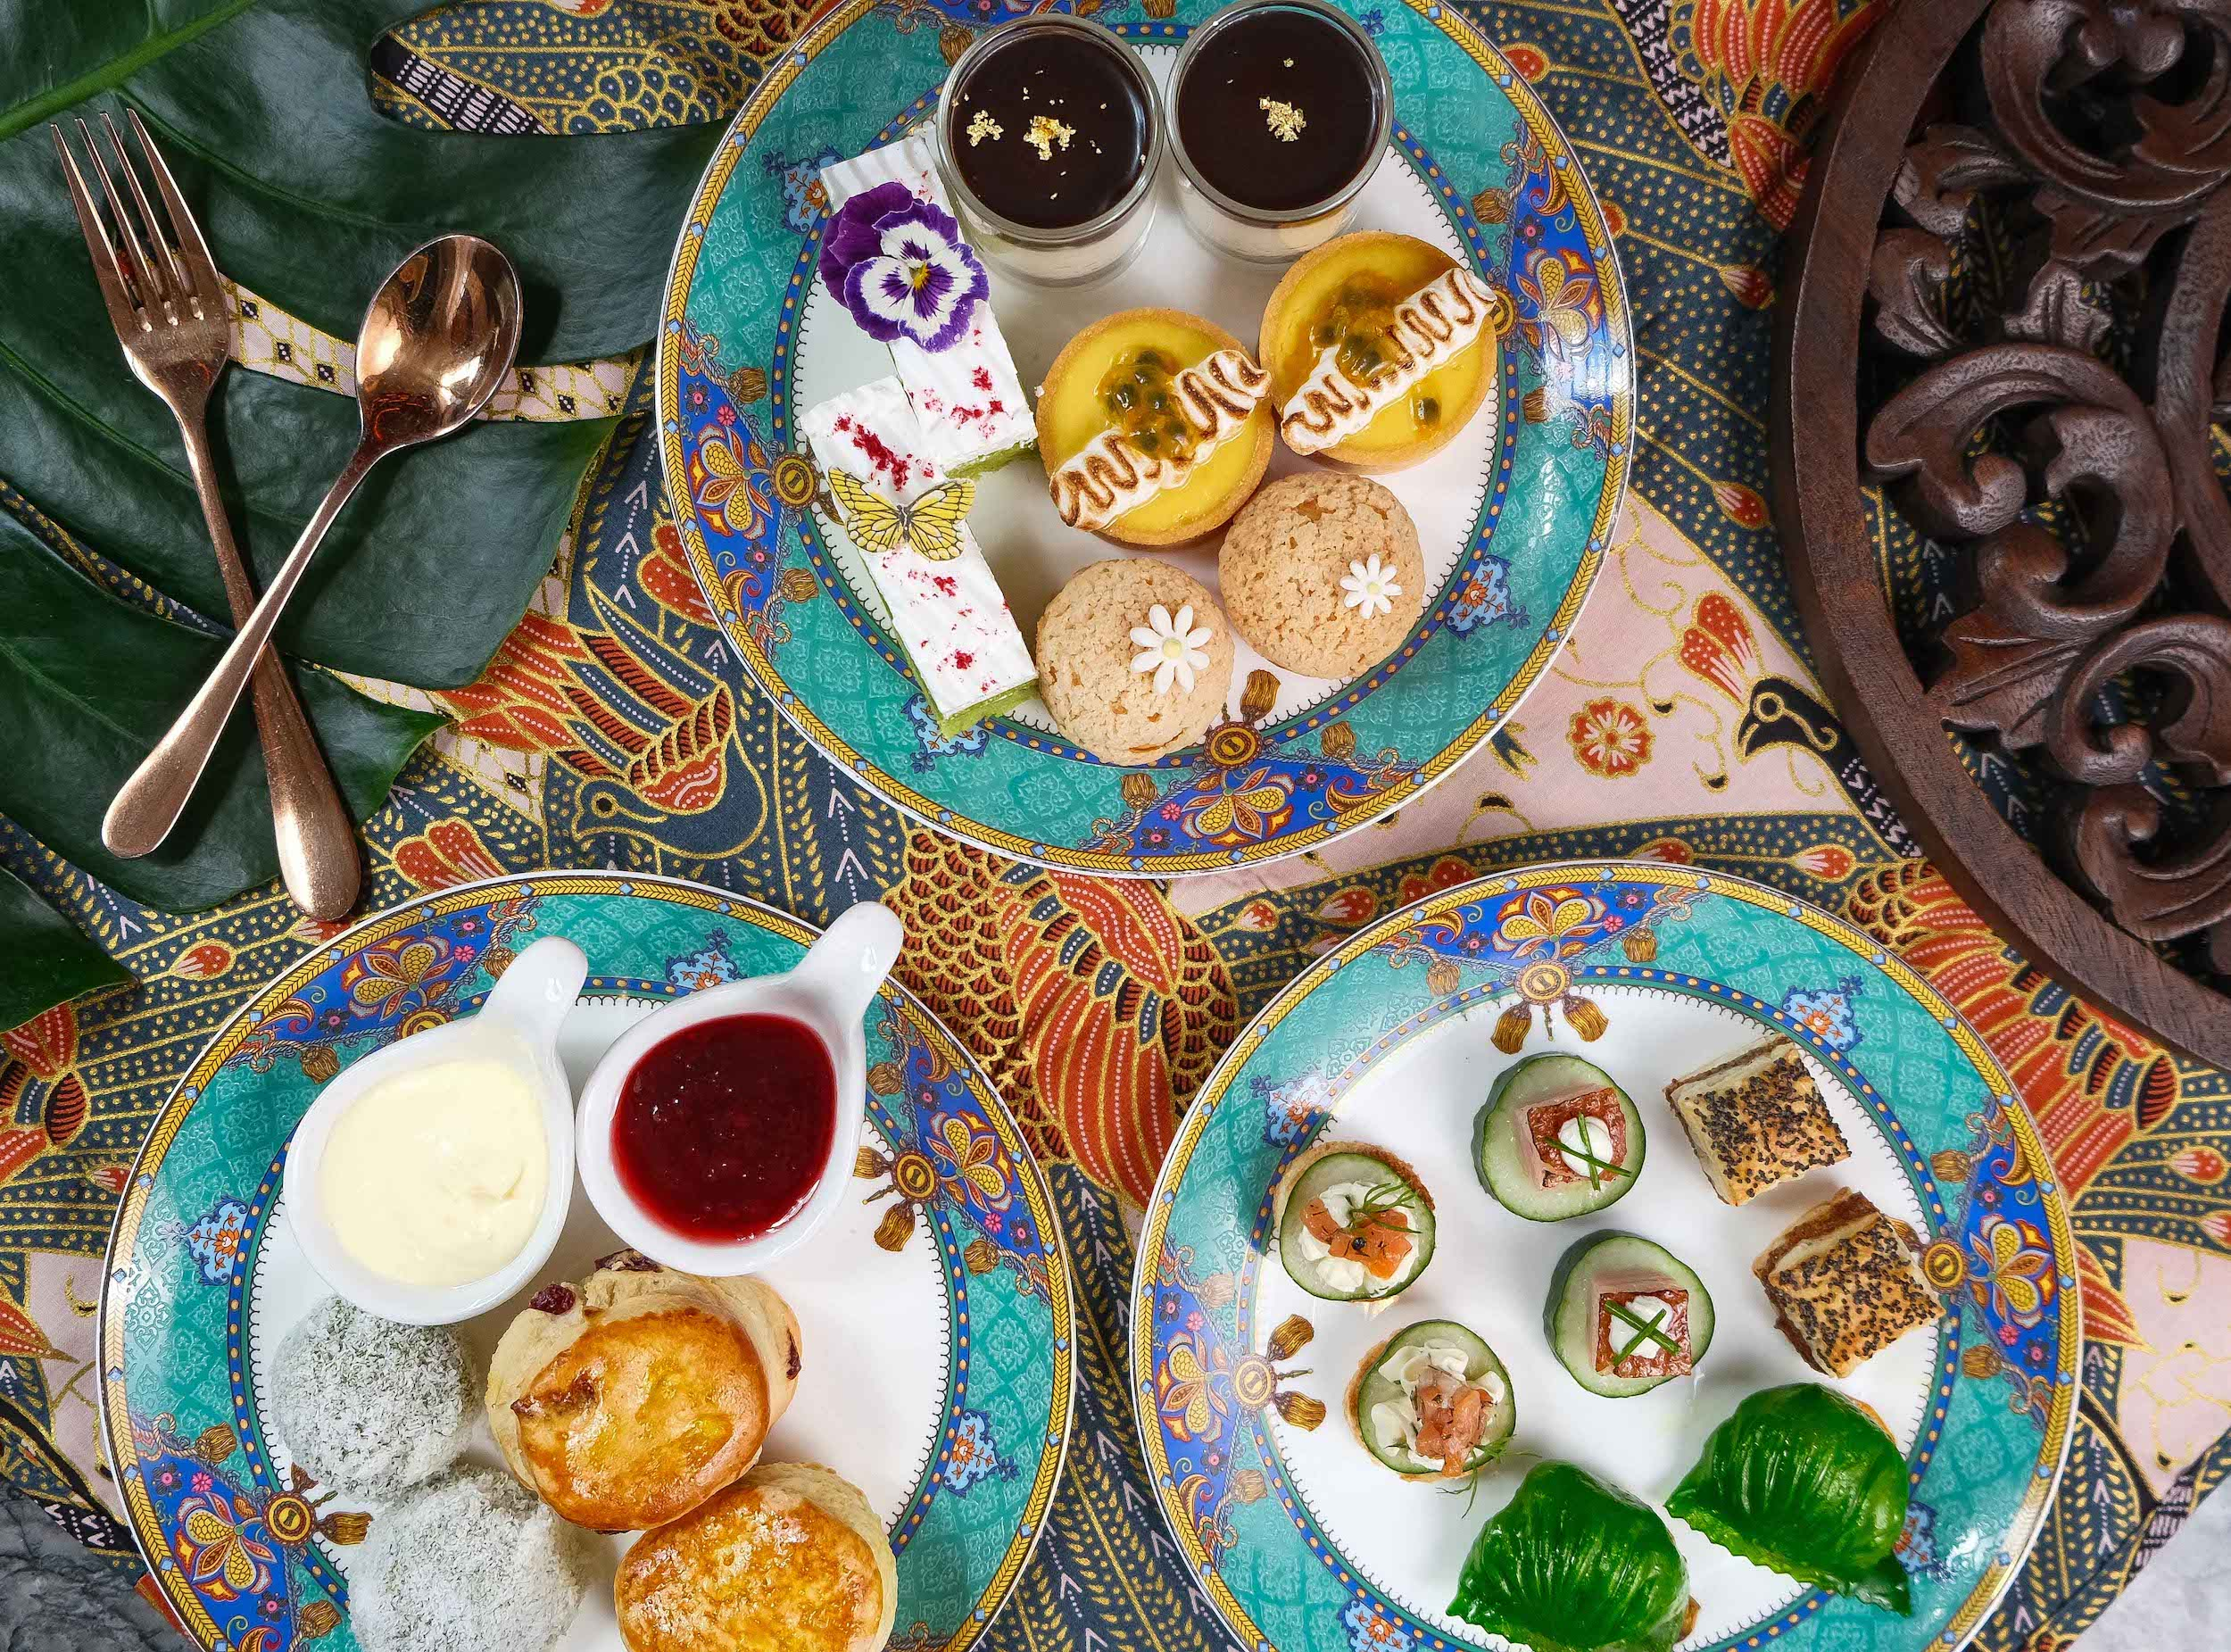 crabtree & evelyn x madame fu bali luxury afternoon tea high tea to try this summer